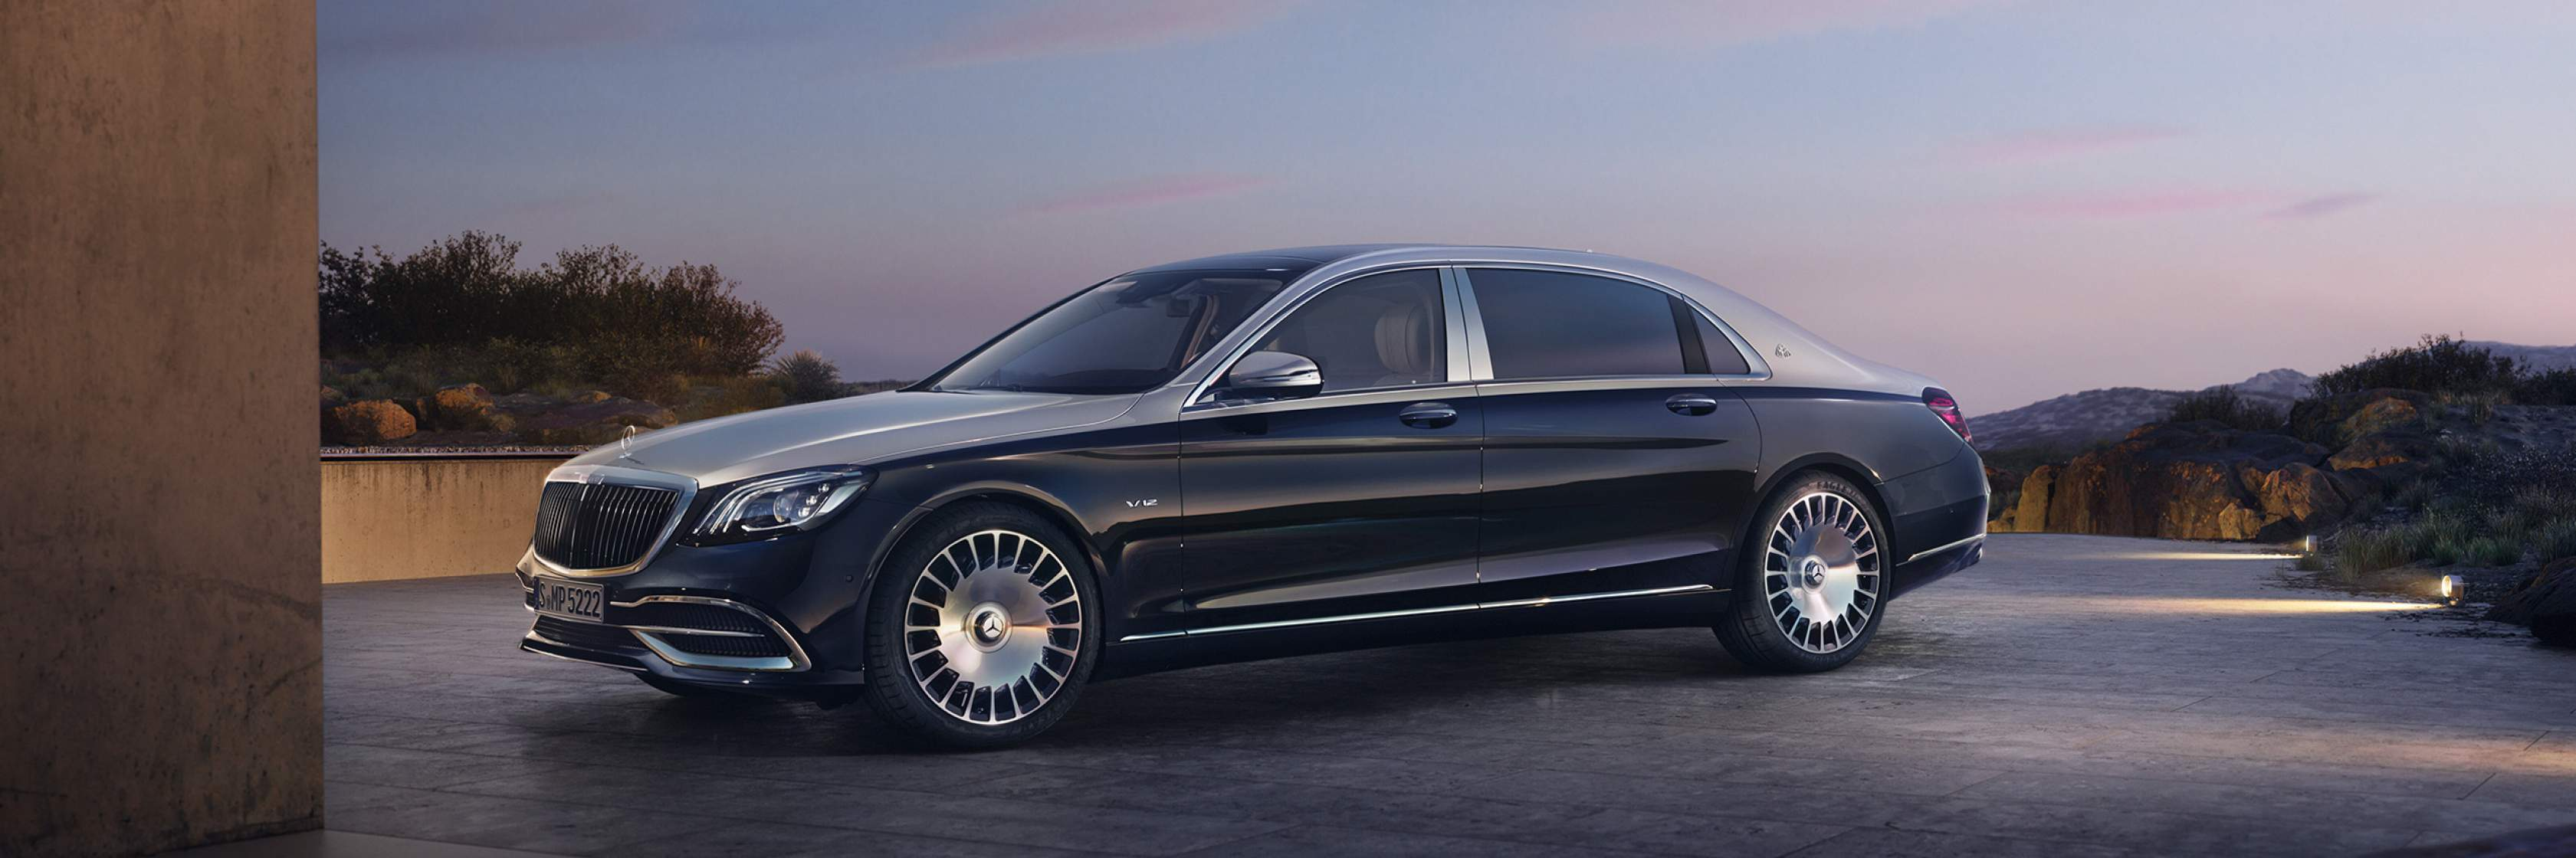 Огляд Mercedes-Maybach